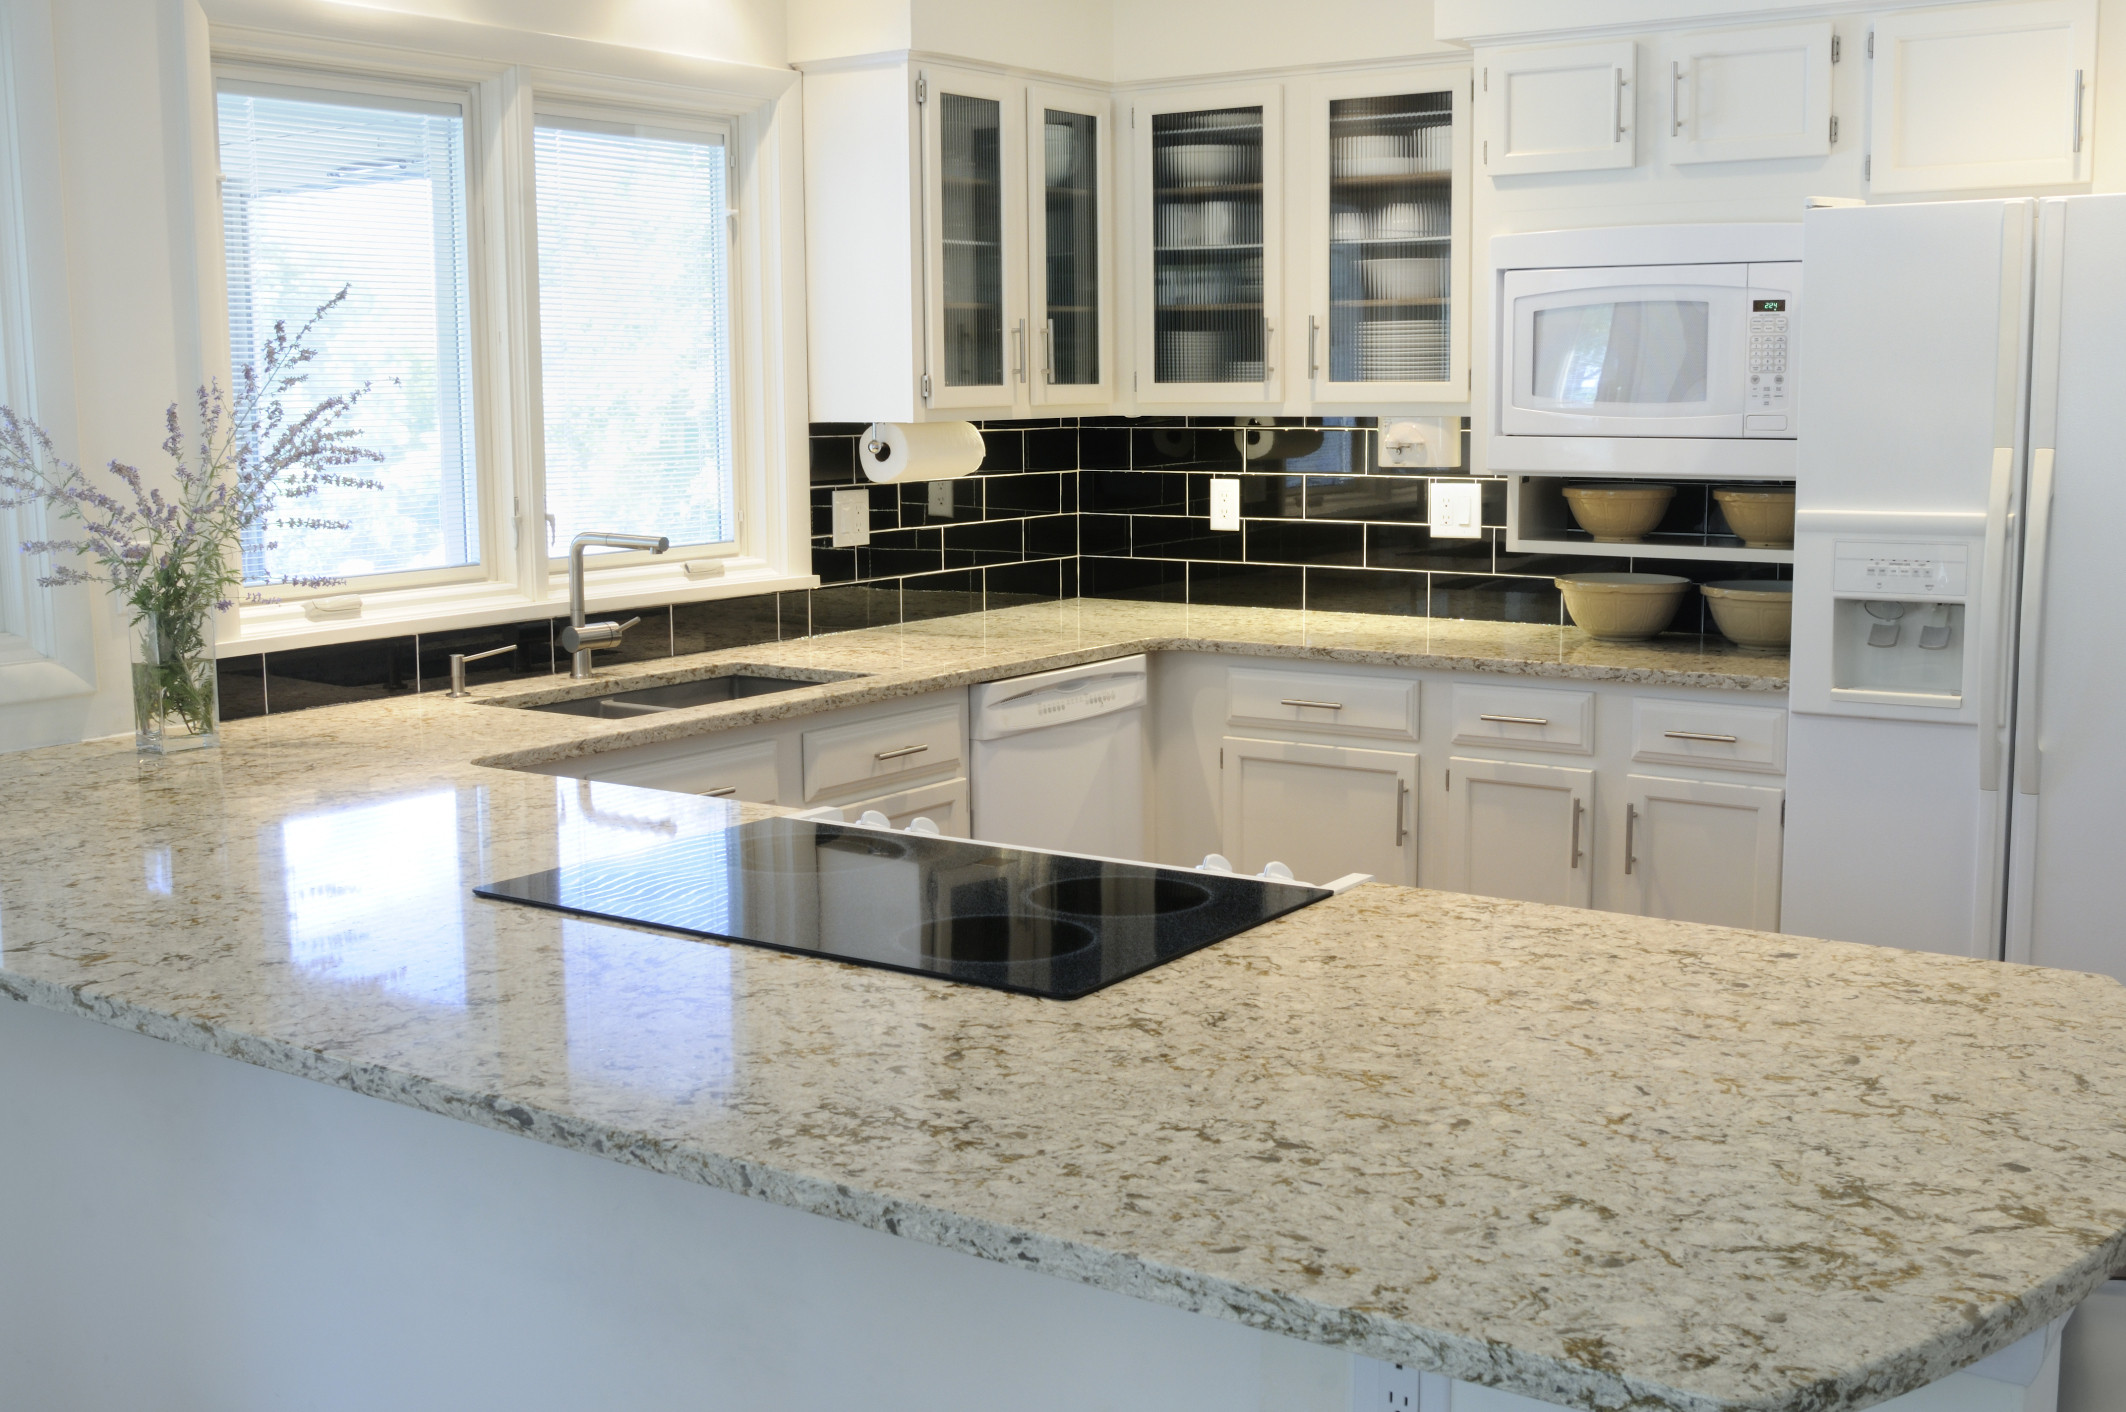 Granite Stone For Kitchen 10 Reasons To Let Go Of The Granite Obsession Already Huffpost